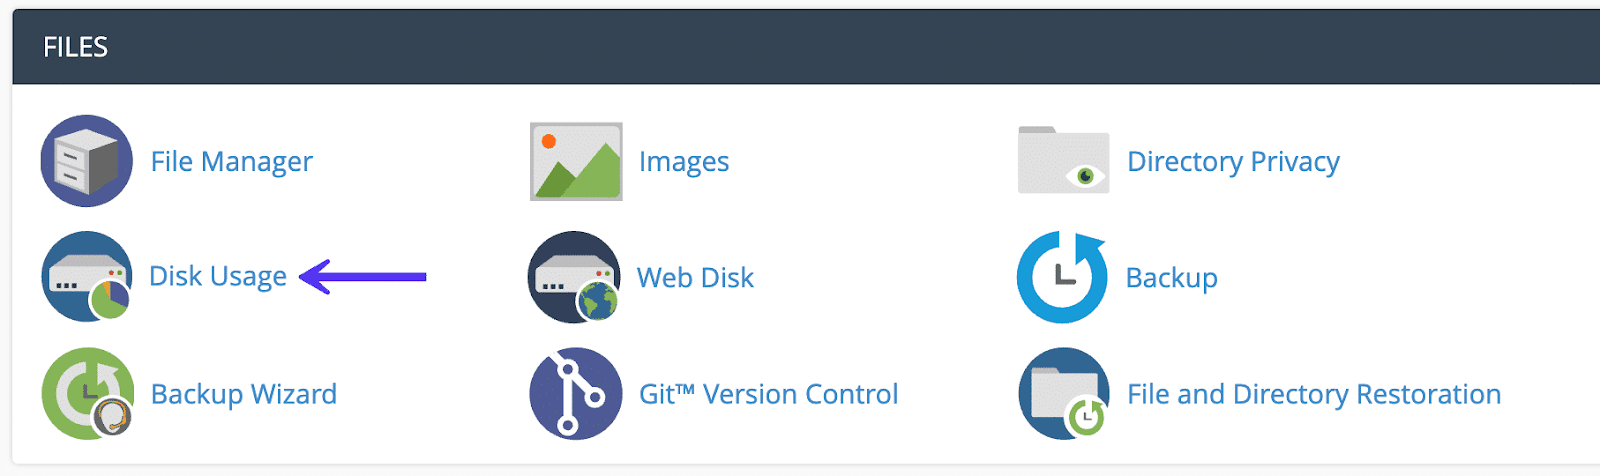 use cPanel disk